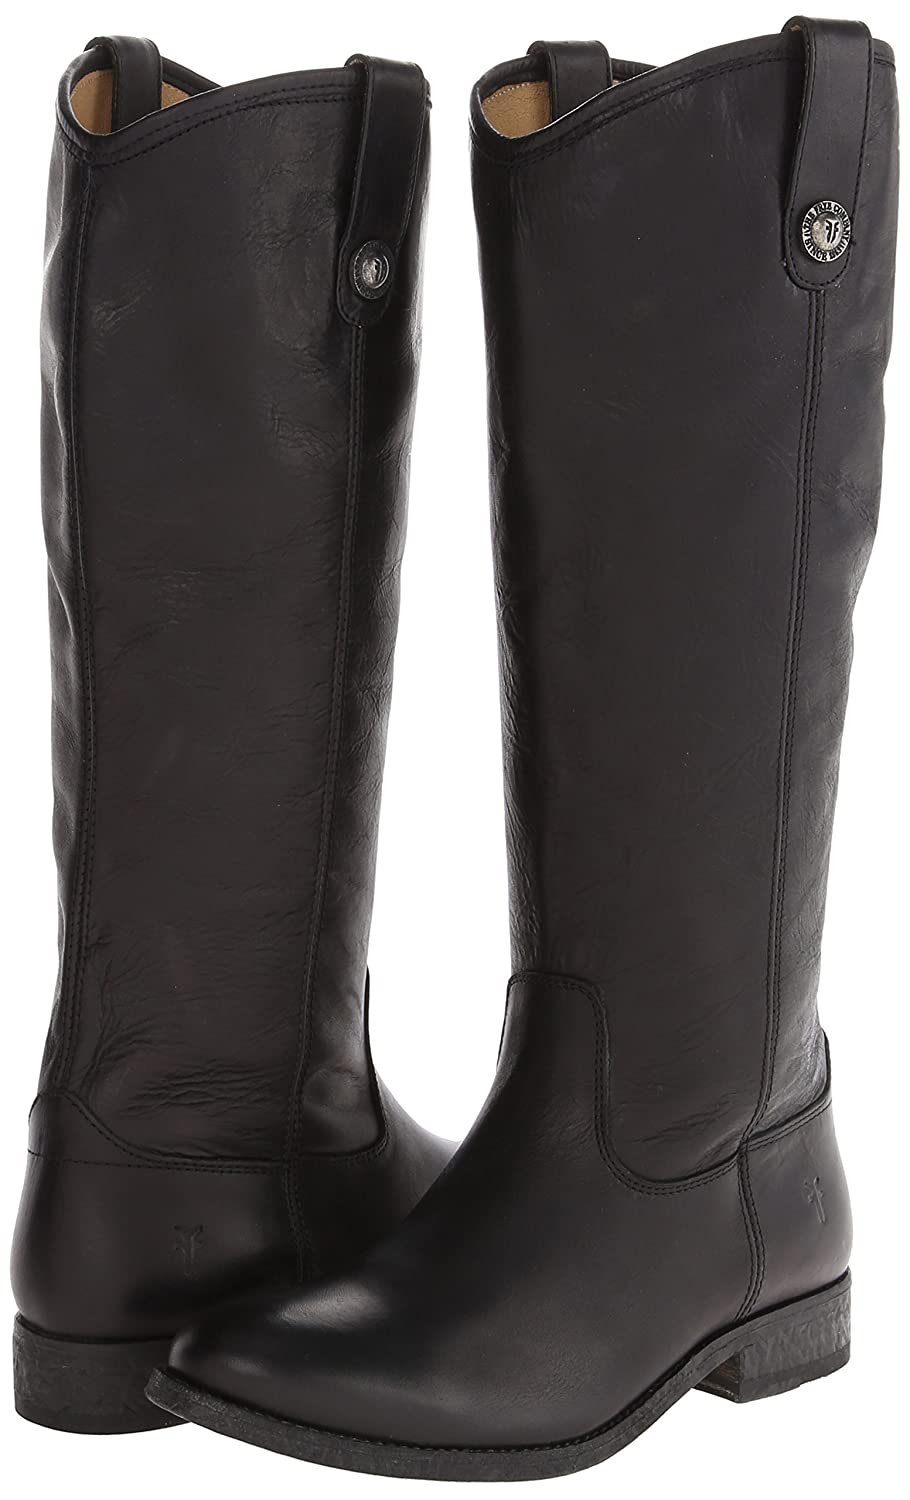 FRYE Women's Melissa Button Boot B00IMIDVQ2 7 B(M) US|Black Washed Antique Pull-up-77172